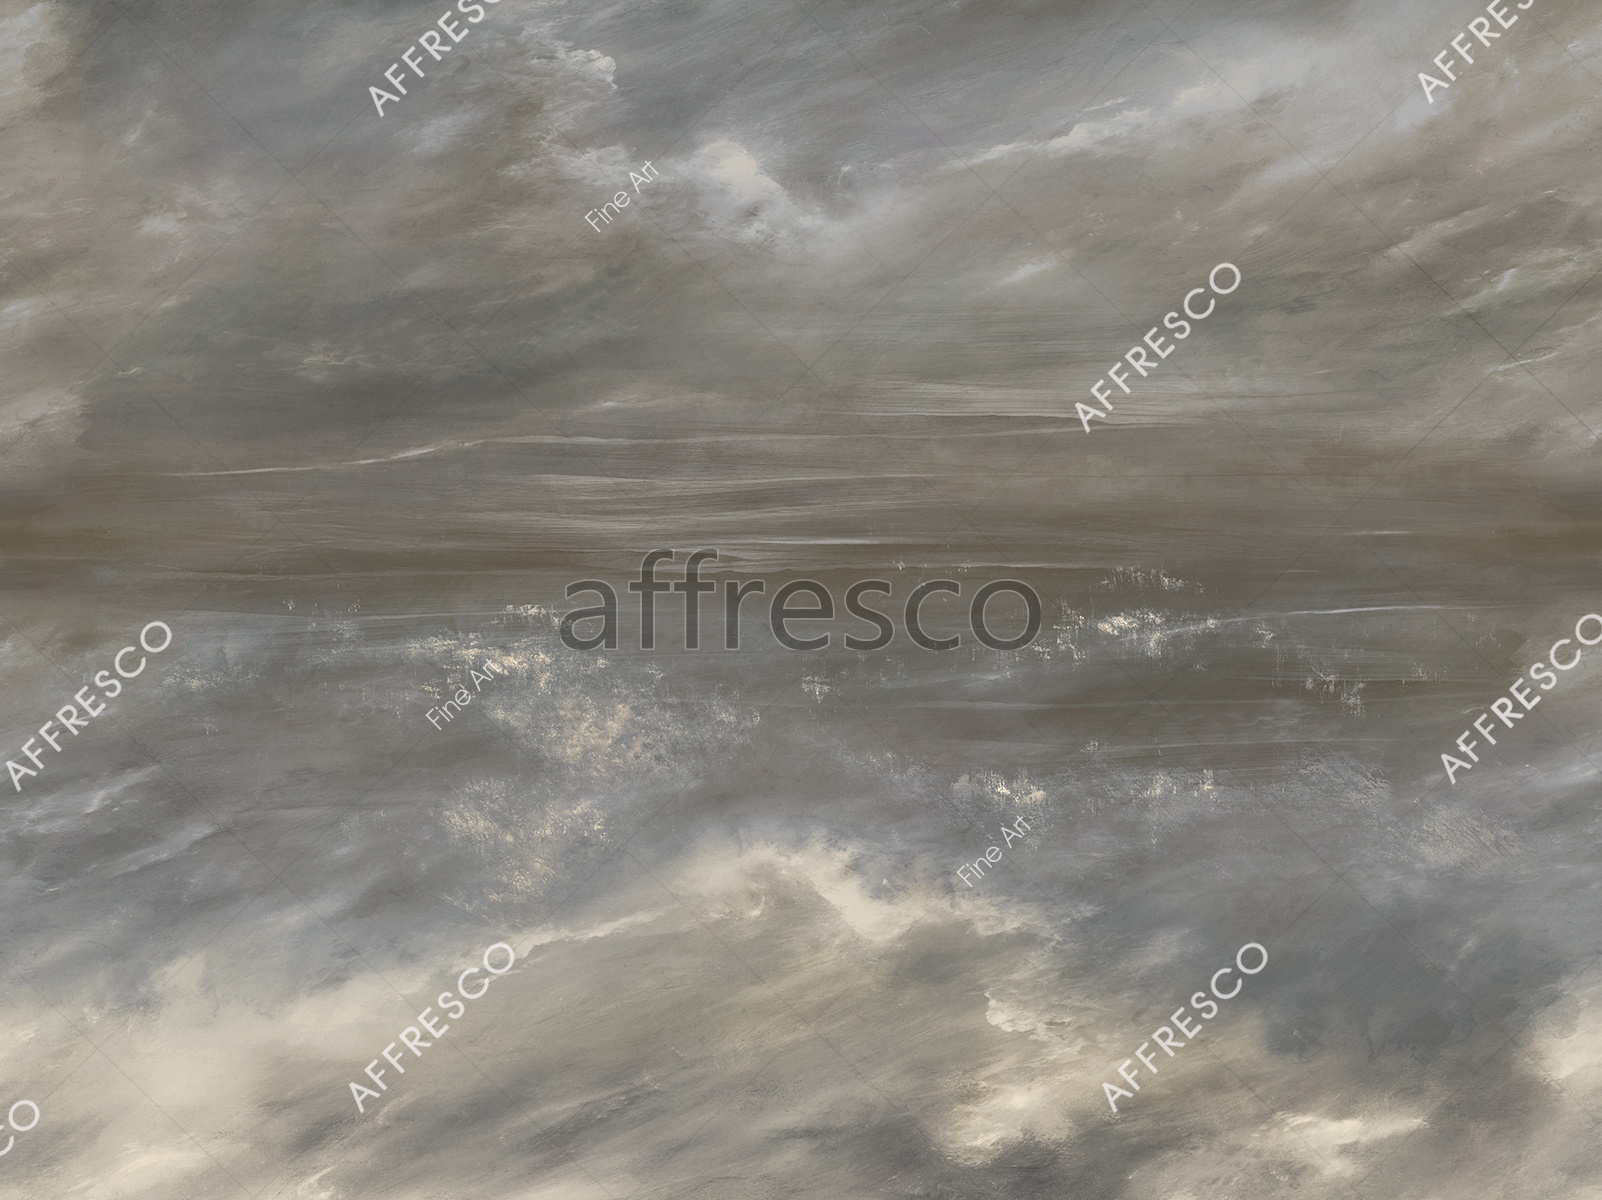 RE894-COL4 | Fine Art | Affresco Factory